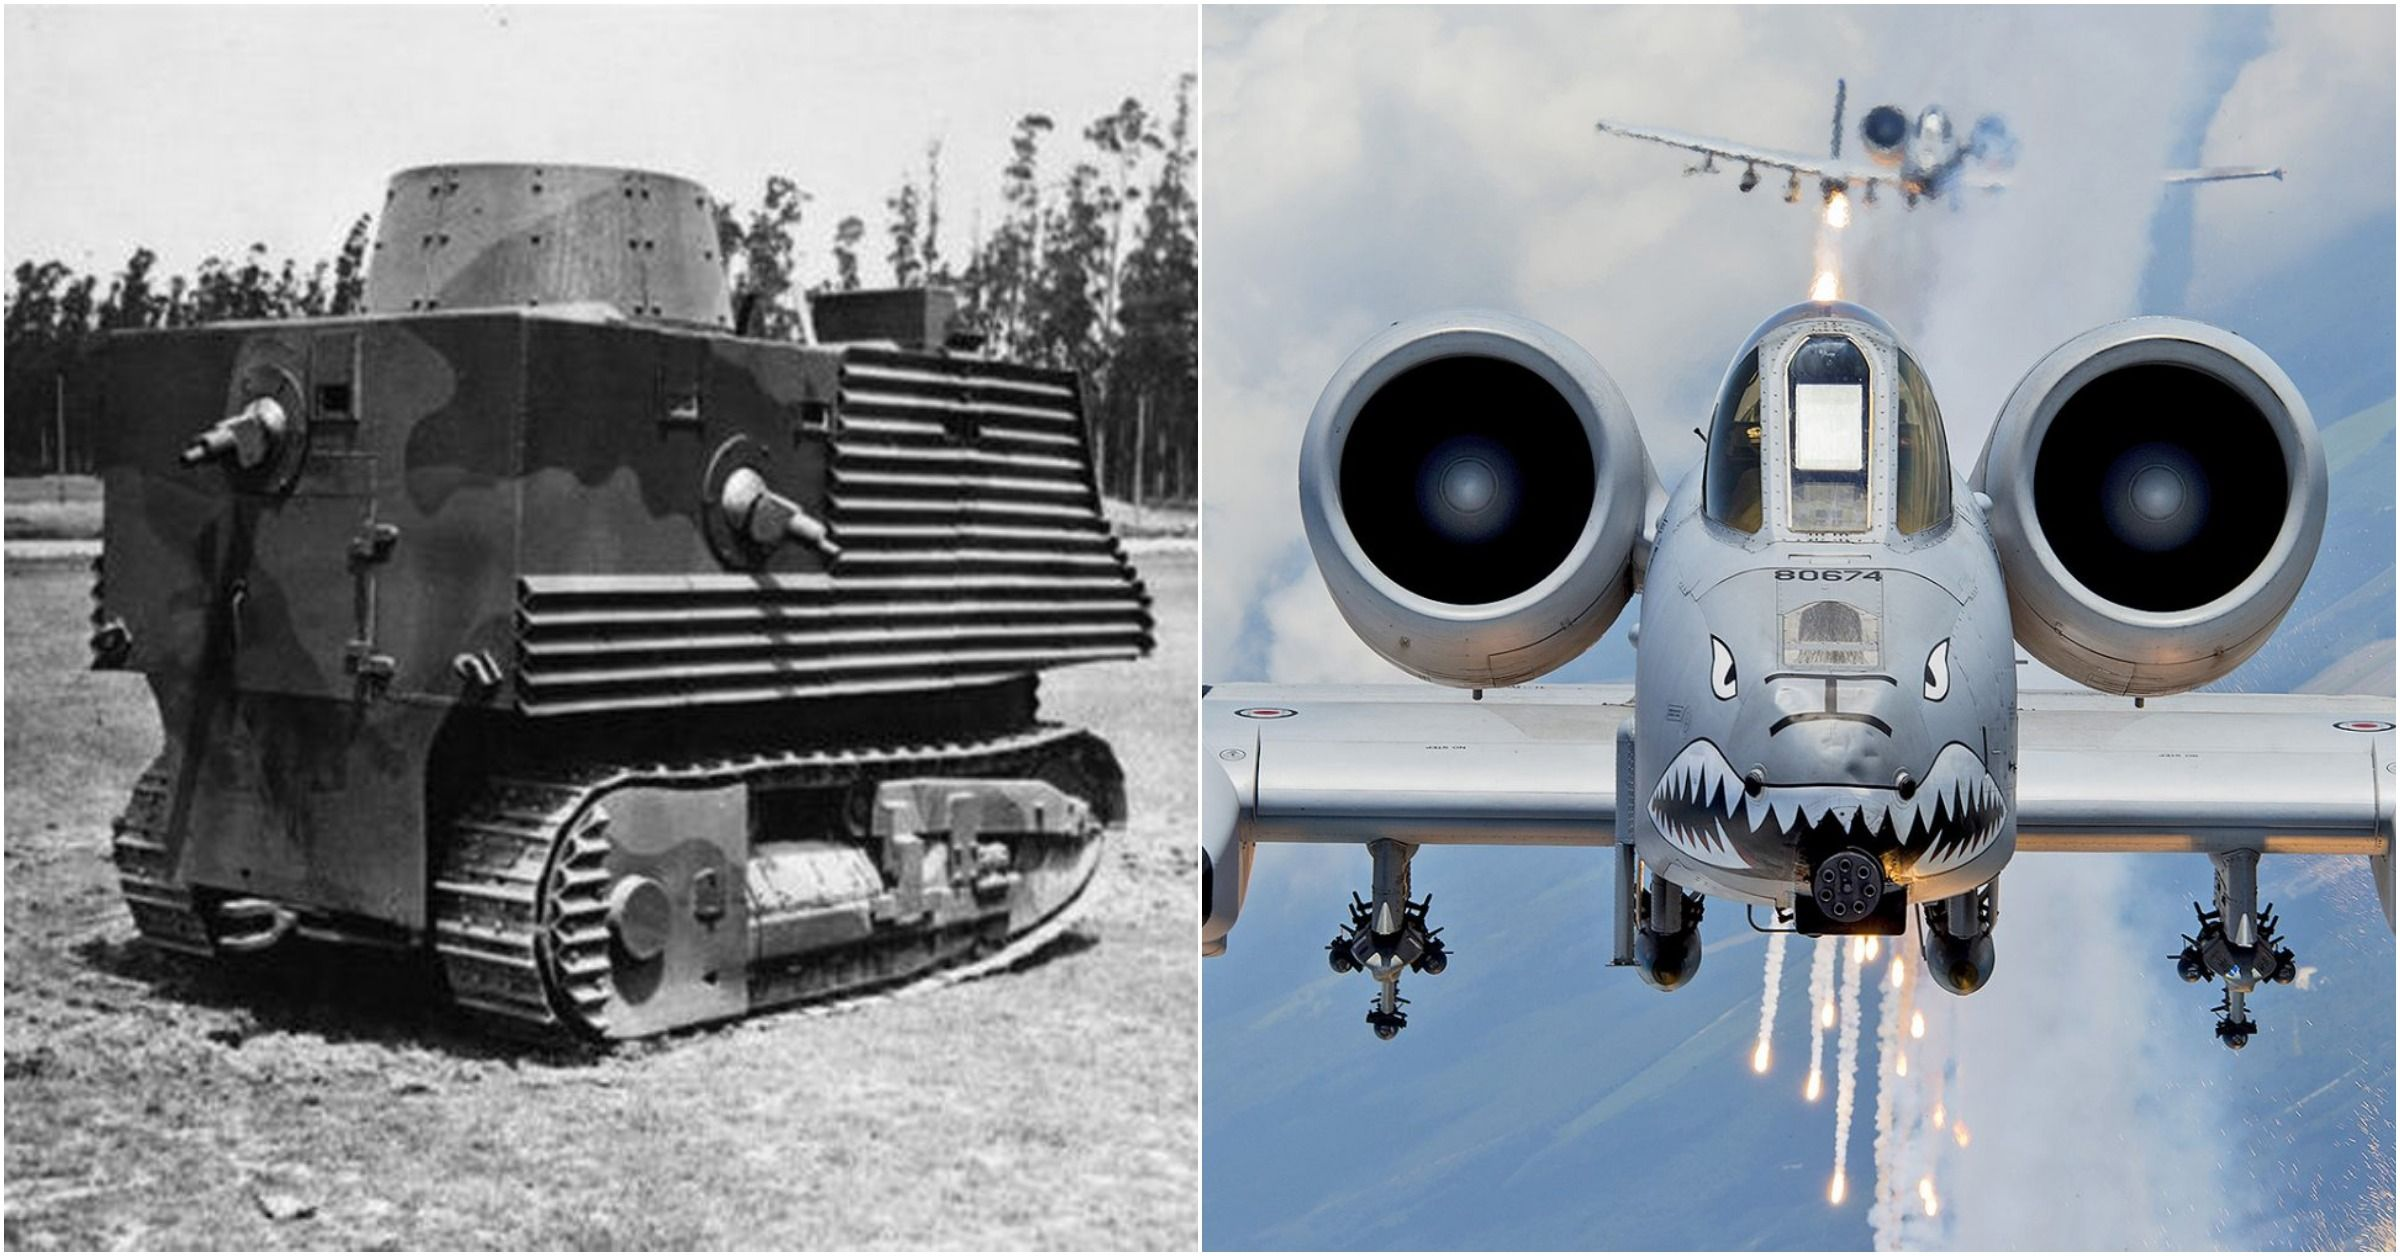 5 Of The Worst Military Vehicles That Armies Regretted Using (10 Of The Coolest)